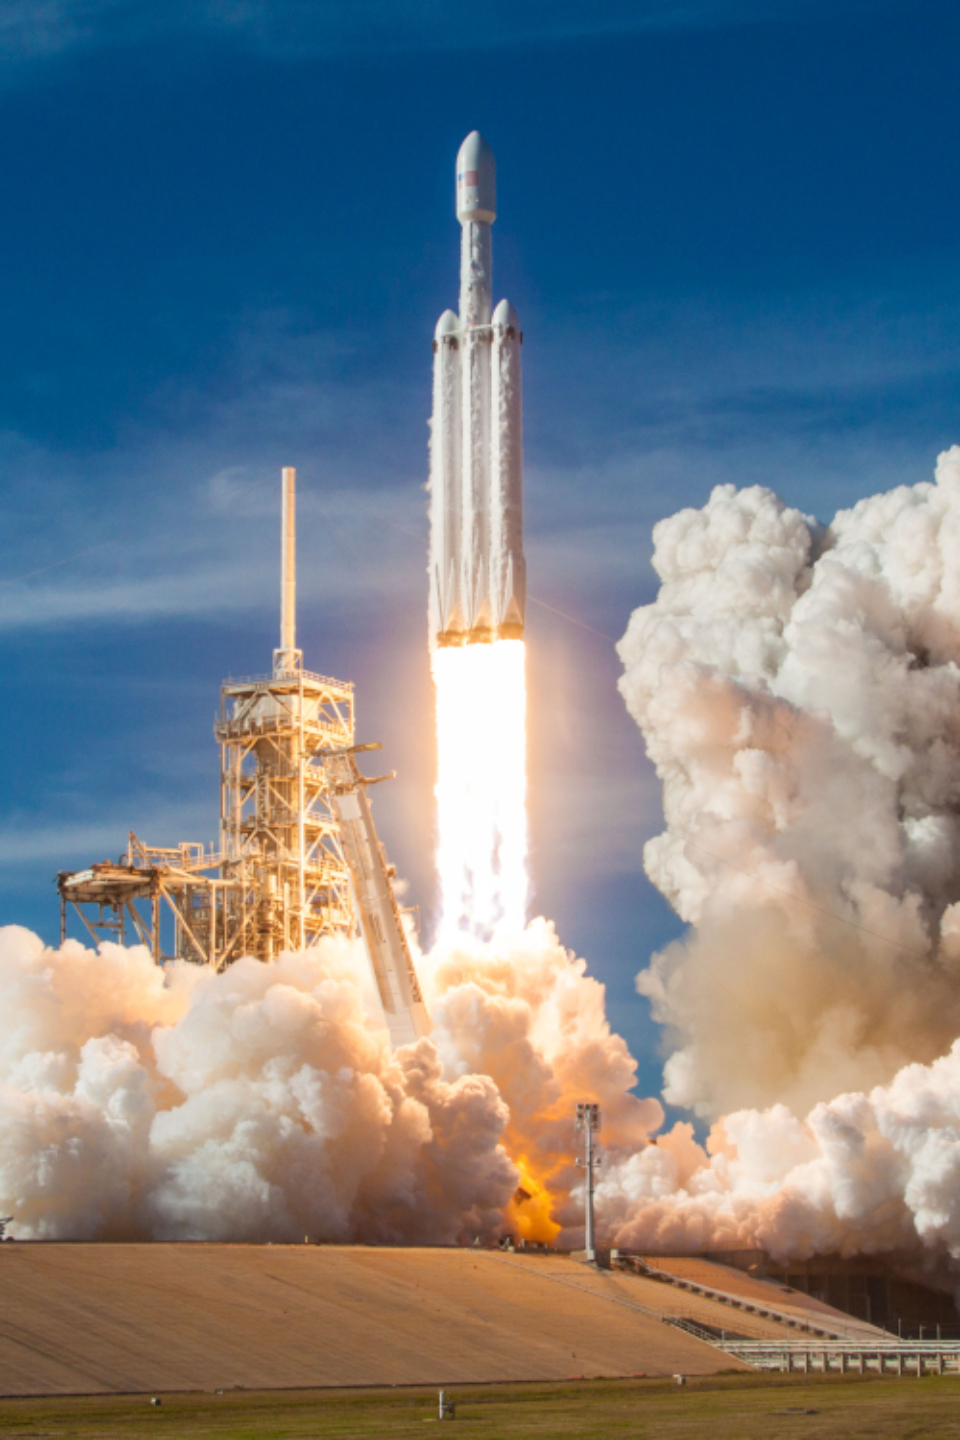 space rocket liftoff launch fire flame smoke spaceship travel voyage journey adventure explore exploration spacex science technology advanced fly flight flying speed power